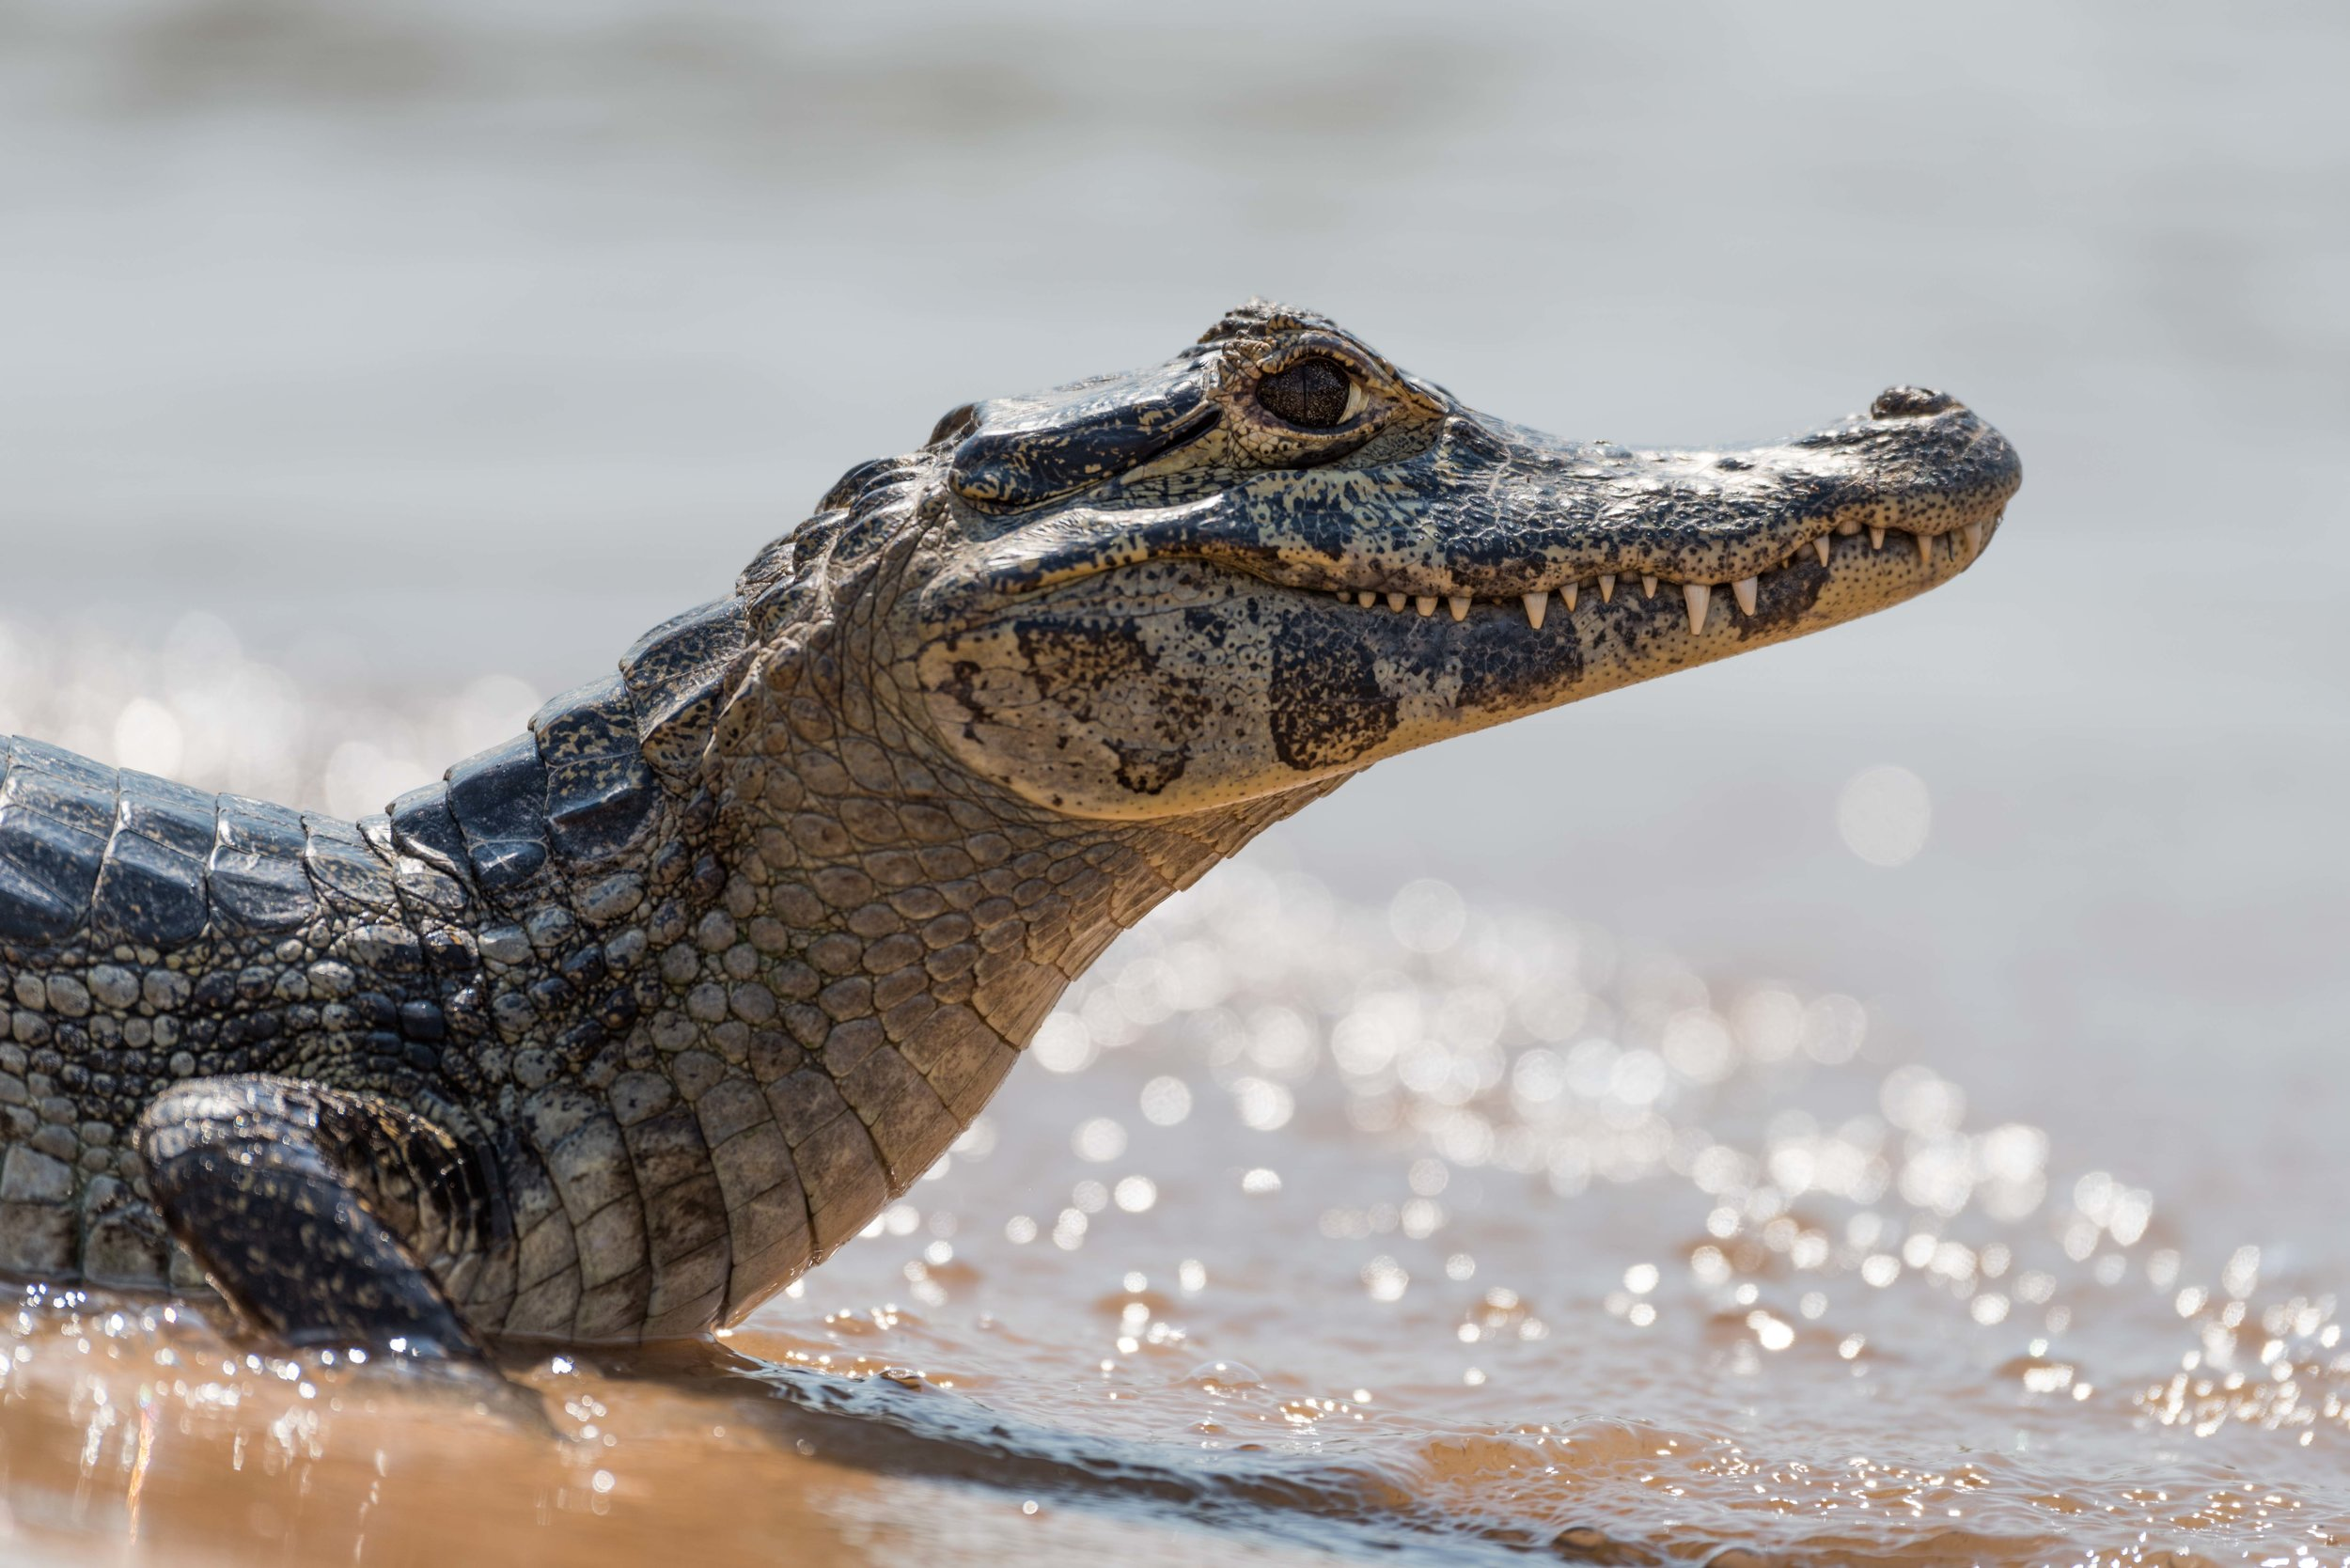 Close-up of yacare caiman with backlit waves